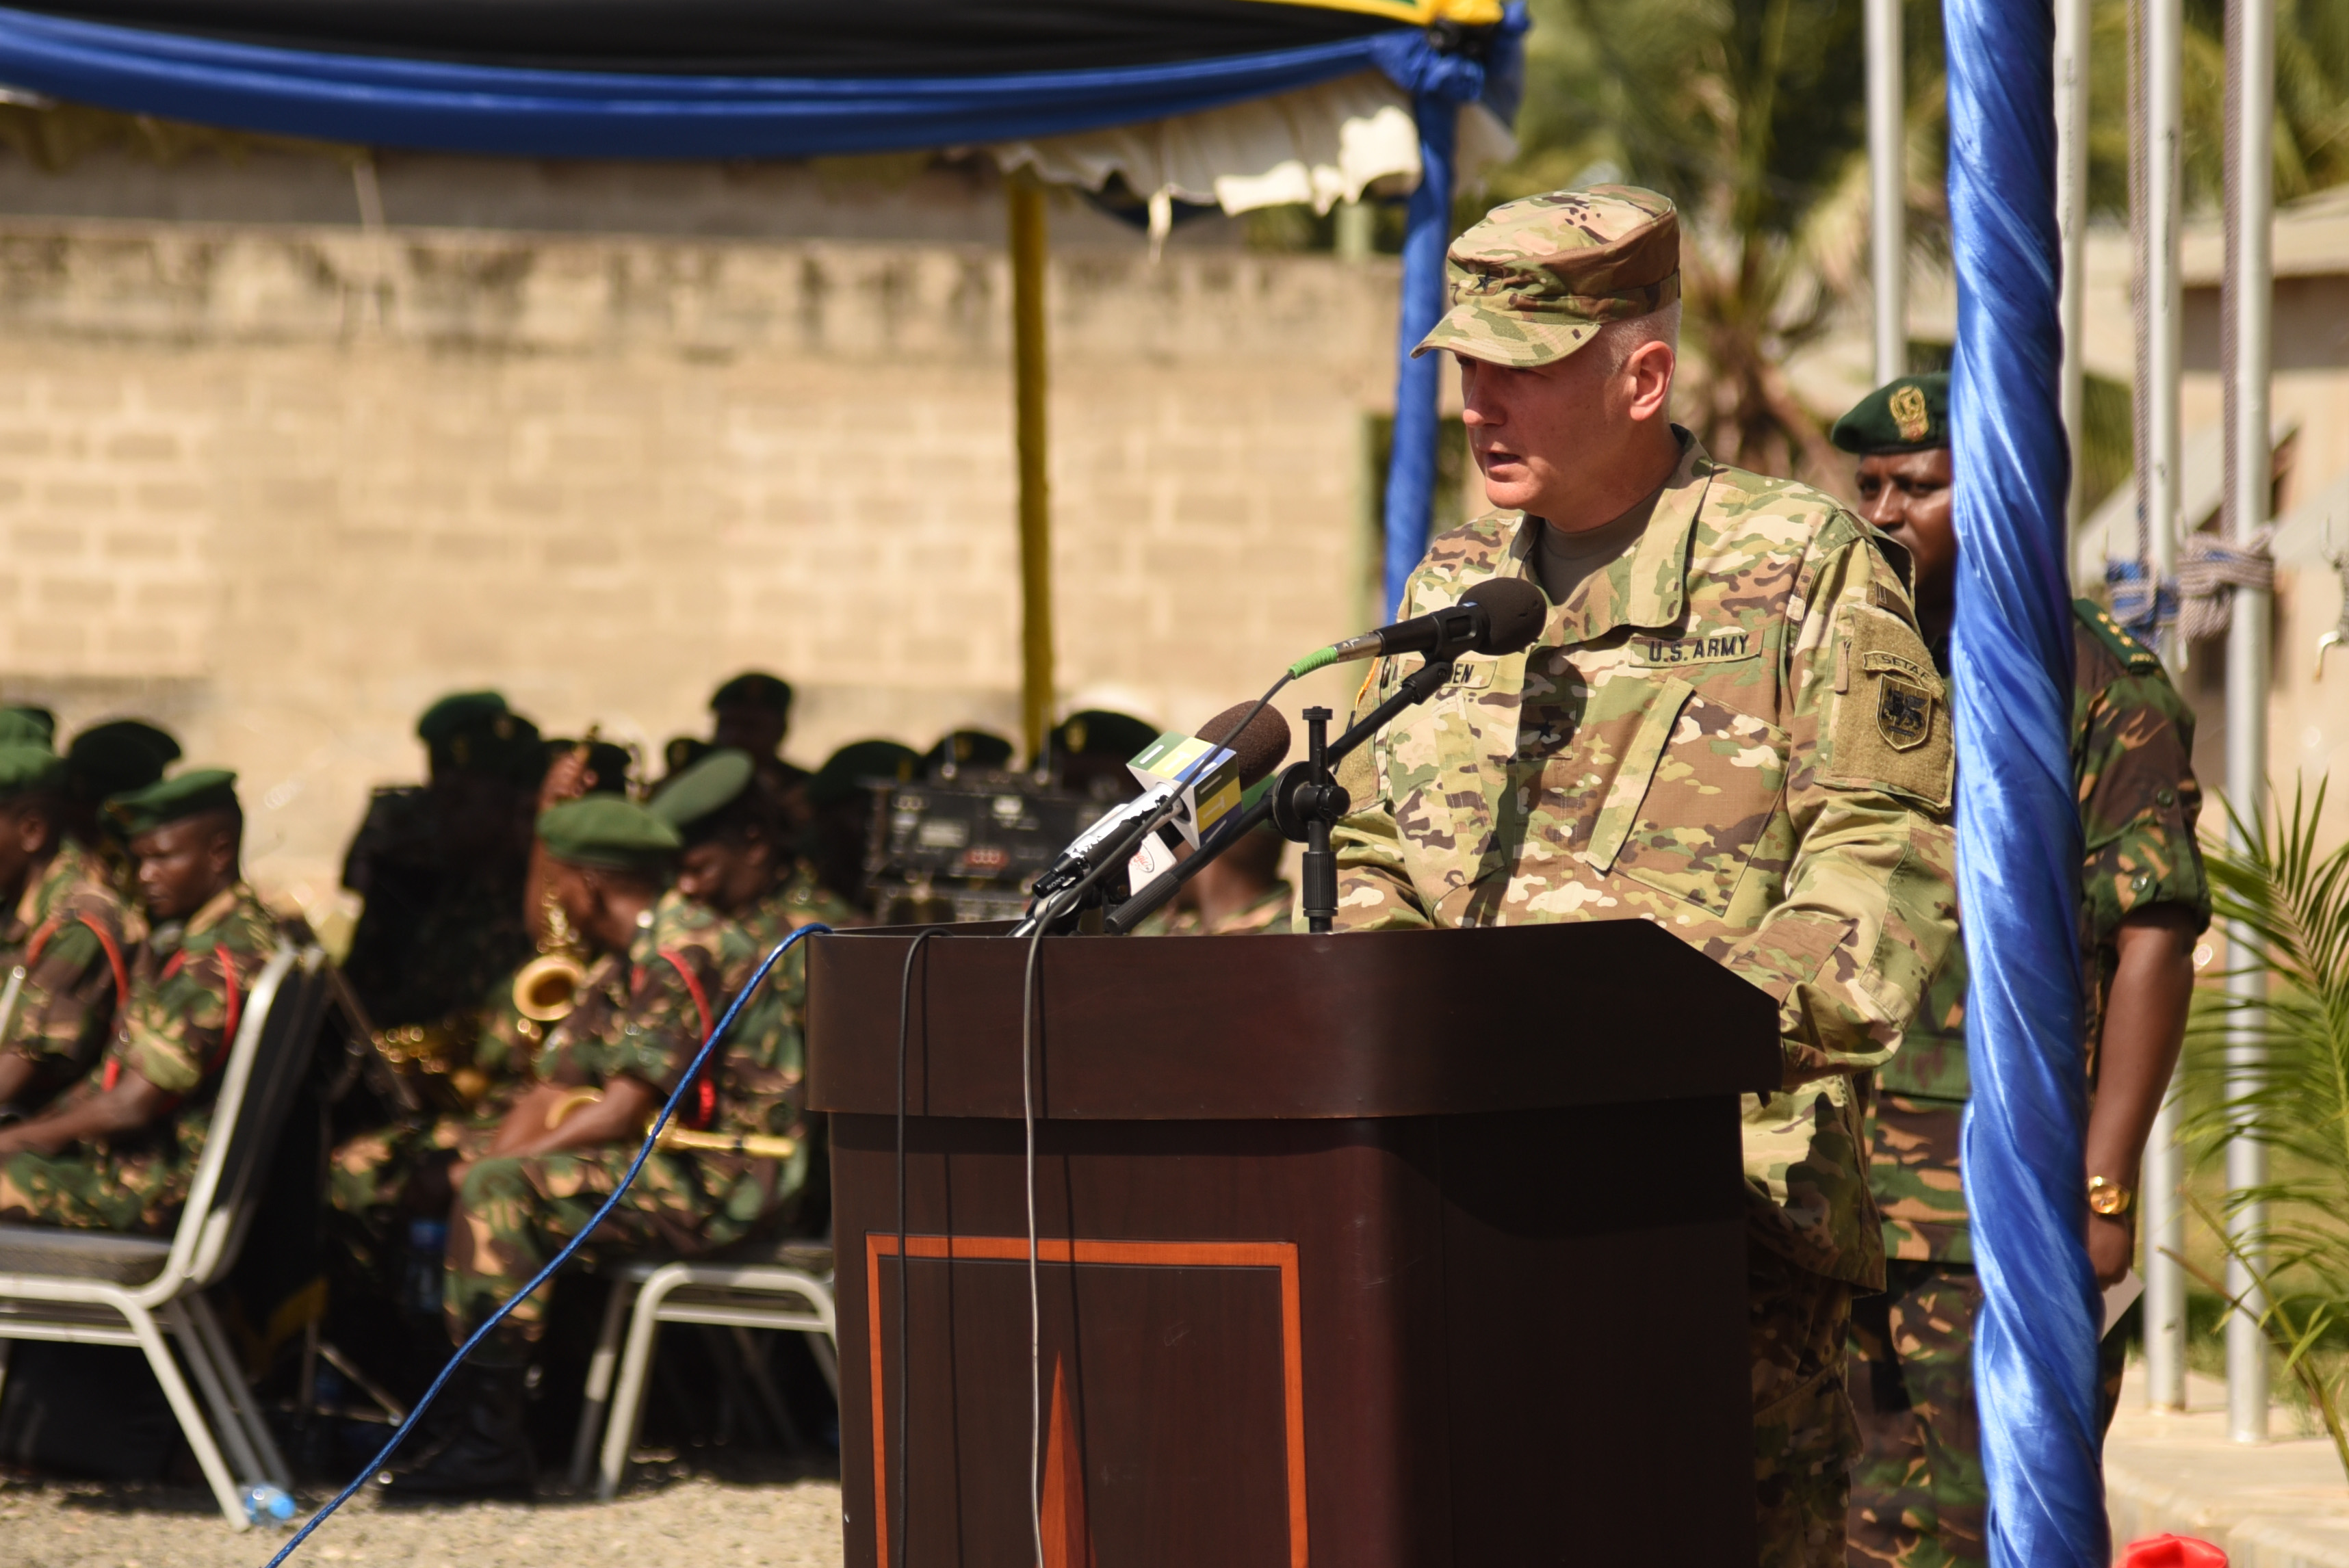 DAR ES SALAAM, Tanzania – U.S. Army Brig. Gen. Jon Jensen, U.S. Army Africa deputy commanding general and co-exercise director, welcomes participants to the Eastern Accord 2016 command post exercise during the opening ceremony at the Tanzanian Peacekeeping Training Centre on July, 11, 2016, Dar es Salaam, Tanzania. EA16 is an annual, combined, joint military exercise that brings together partner nations to practice and demonstrate proficiency in conducting peacekeeping operations. (U.S. Air Force photo by Staff Sgt. Tiffany DeNault)